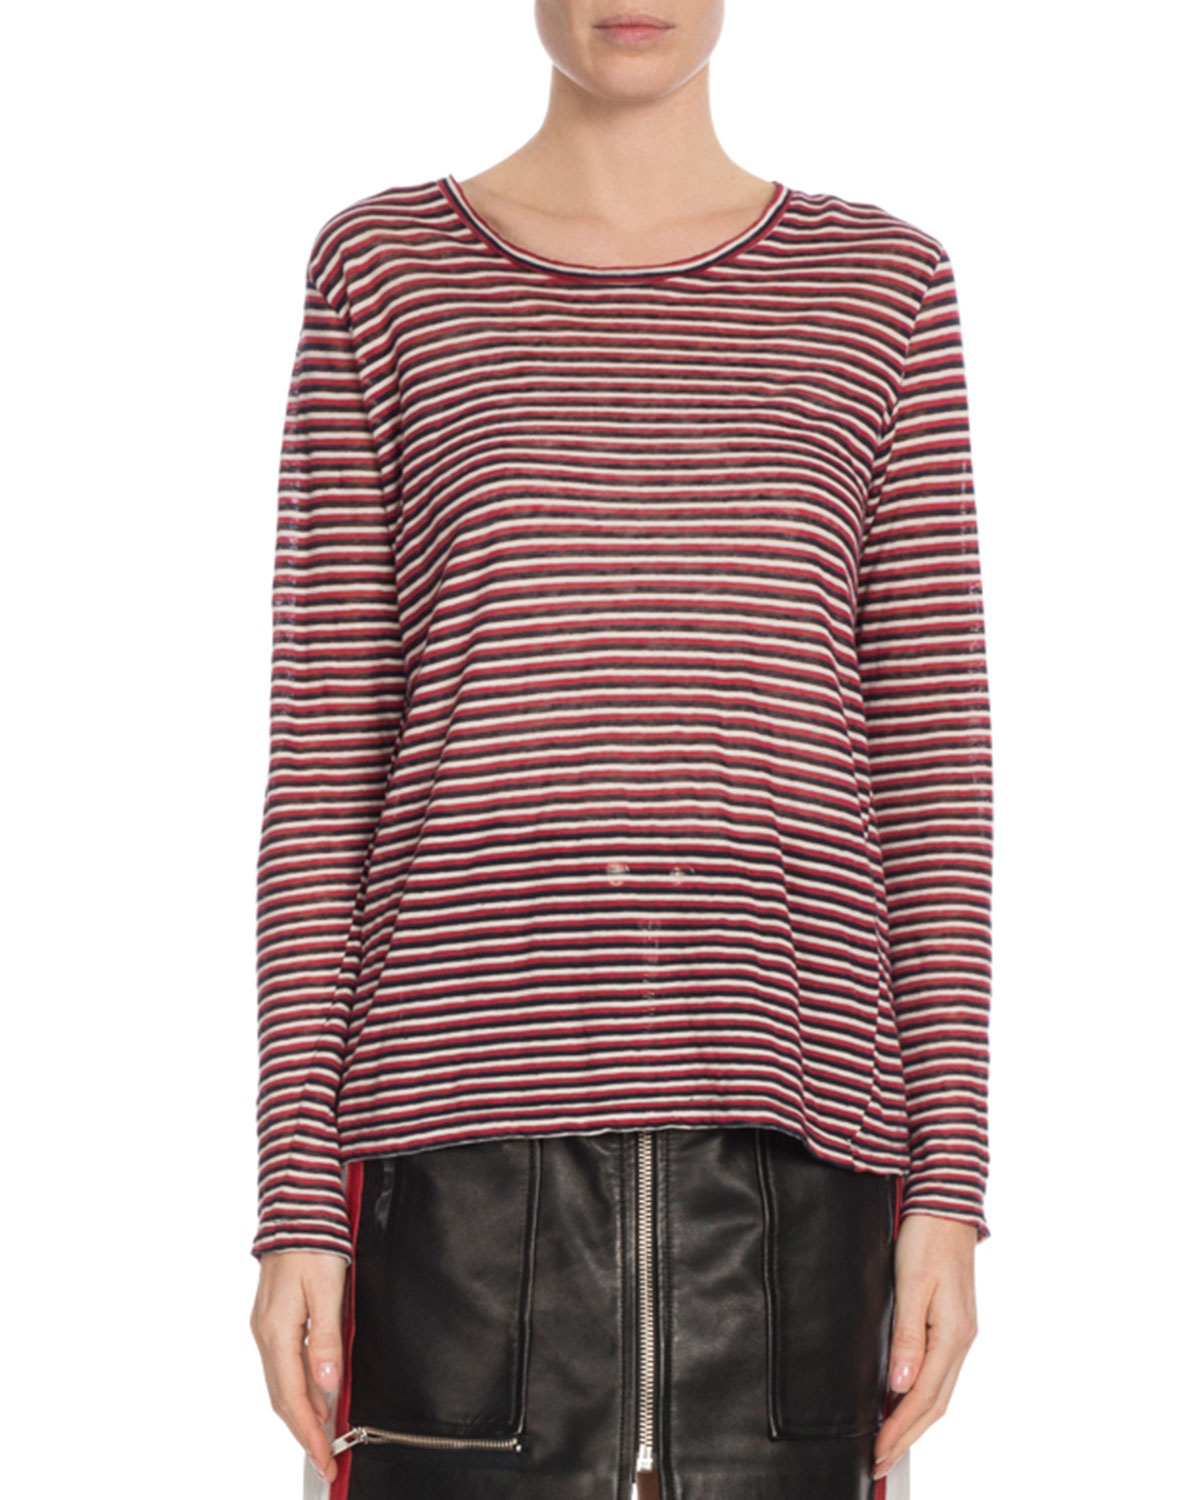 6268ccc7e966 Etoile Isabel Marant Kaaron Striped Long-Sleeve Tee